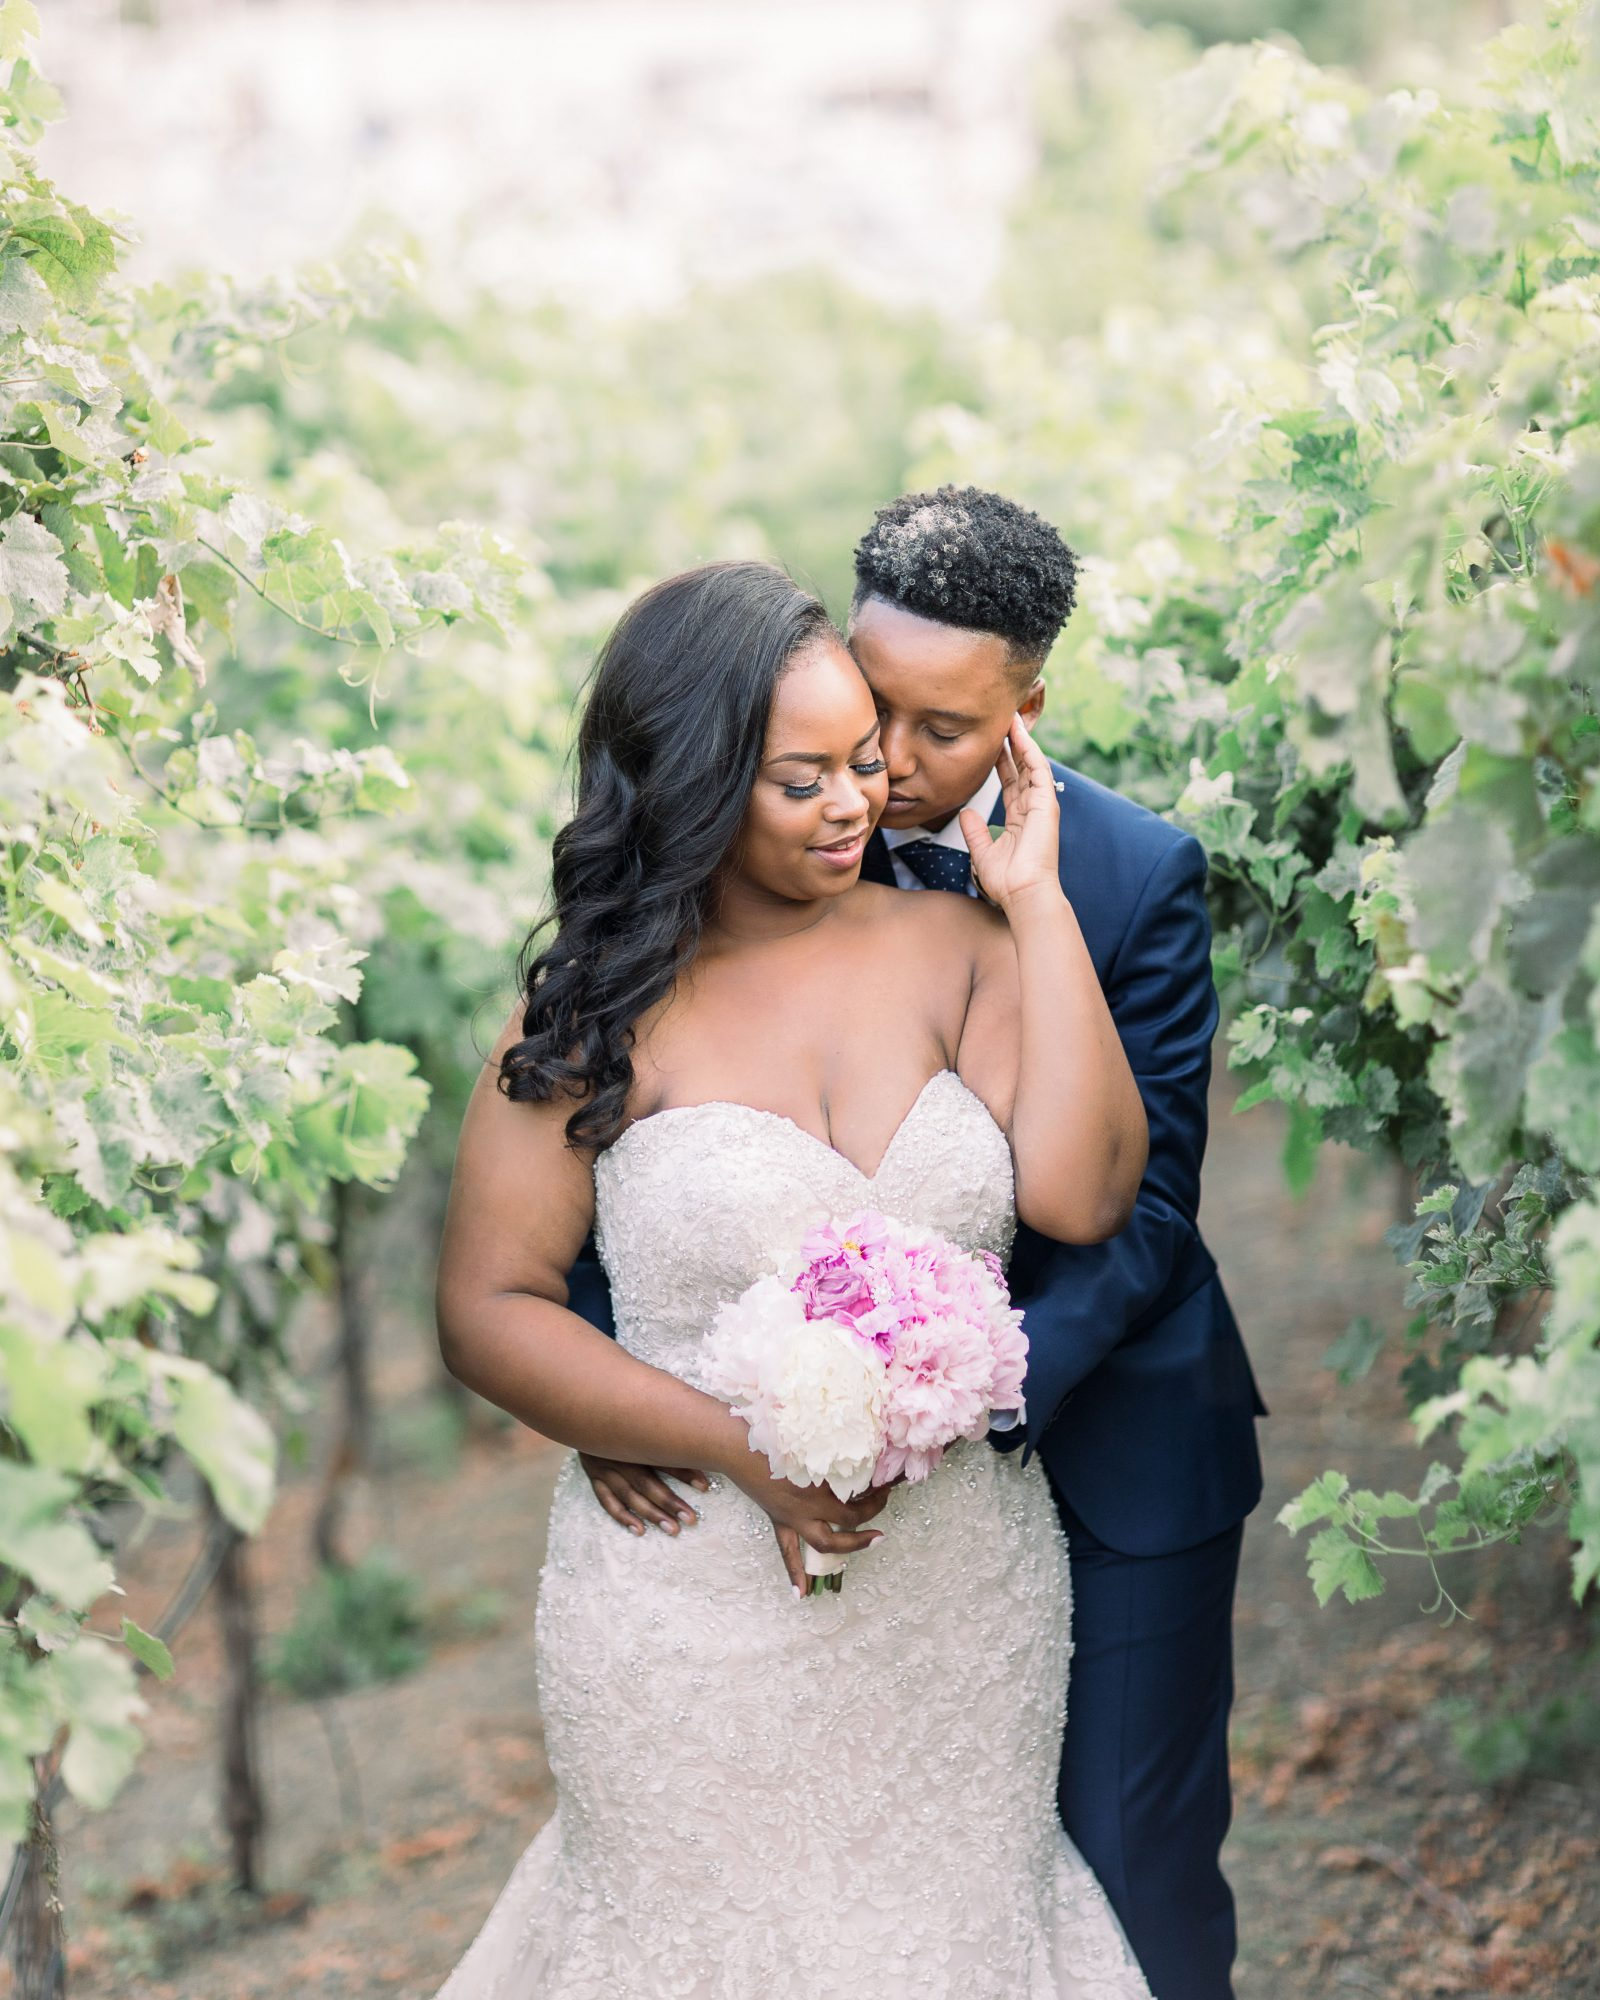 wedding couple pose outdoors in field